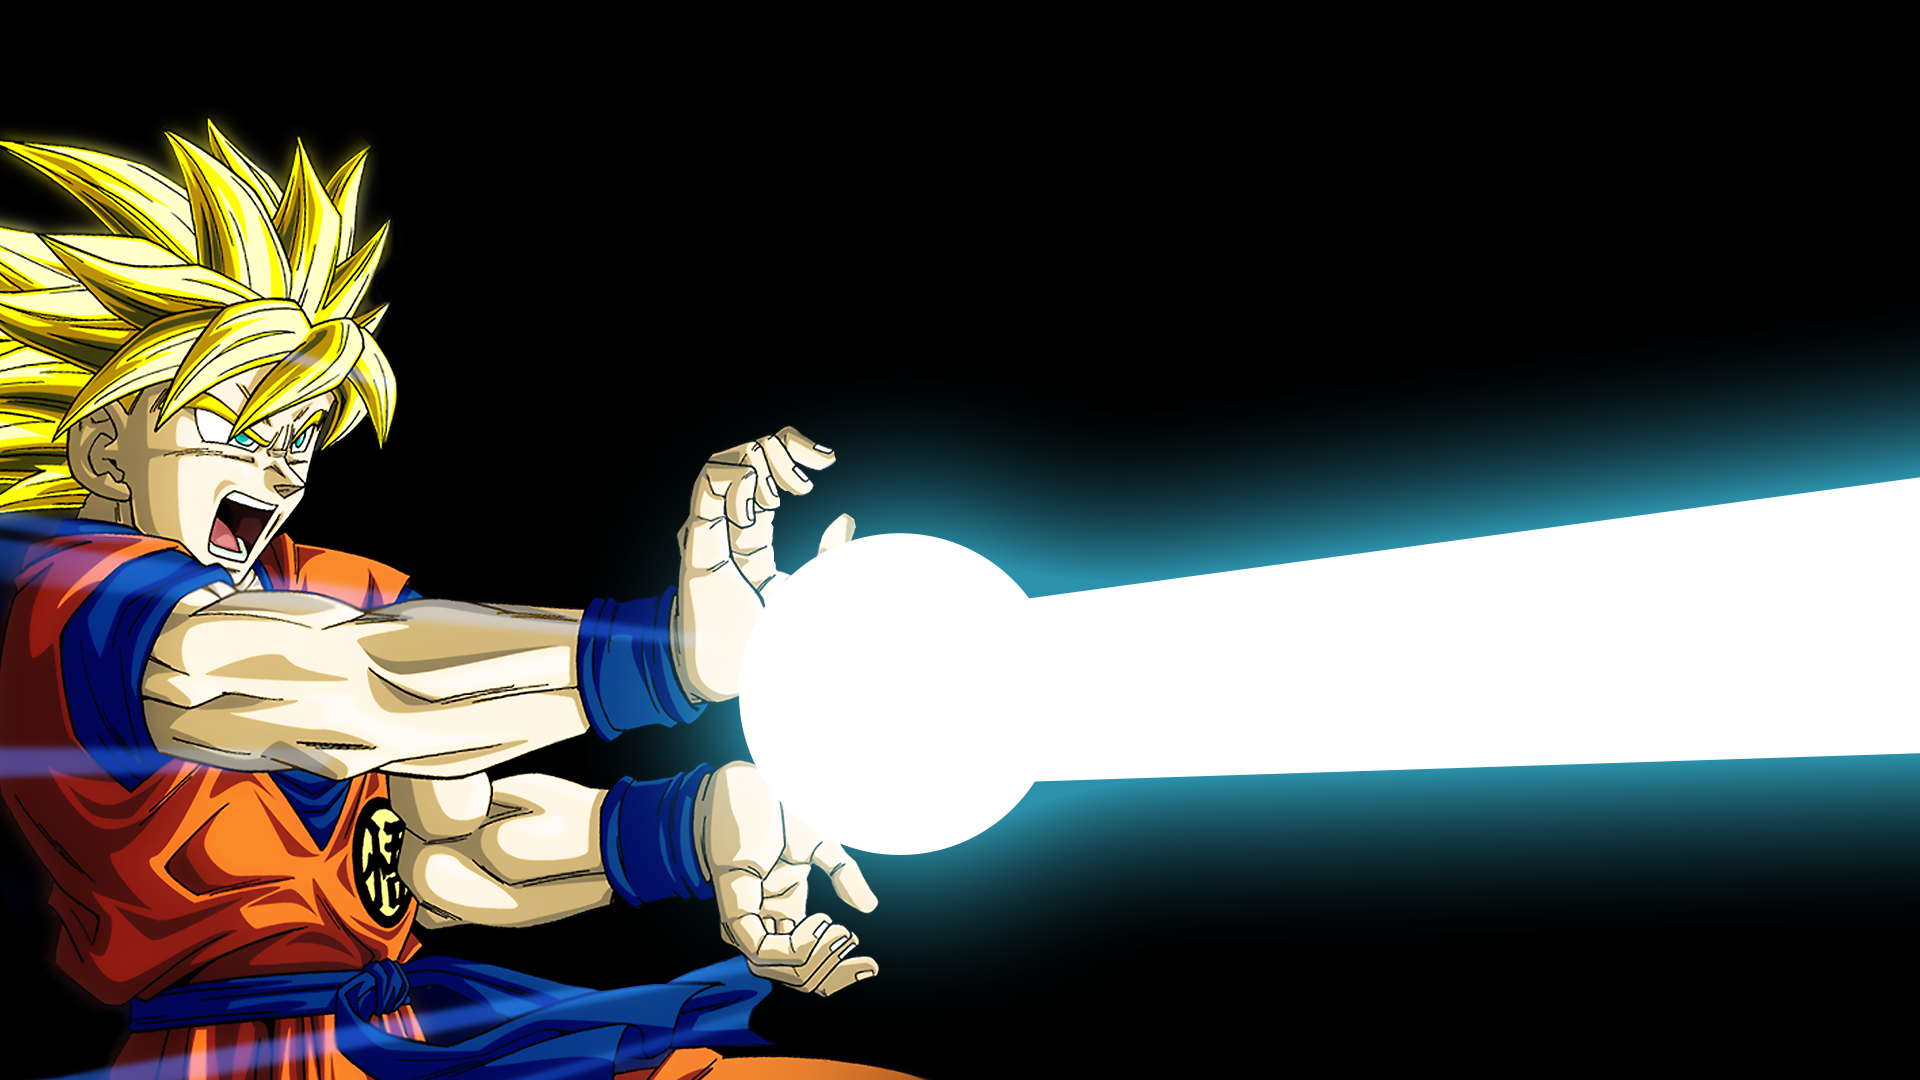 Anime - Dragon Ball Z  Goku Kamehameha Wallpaper